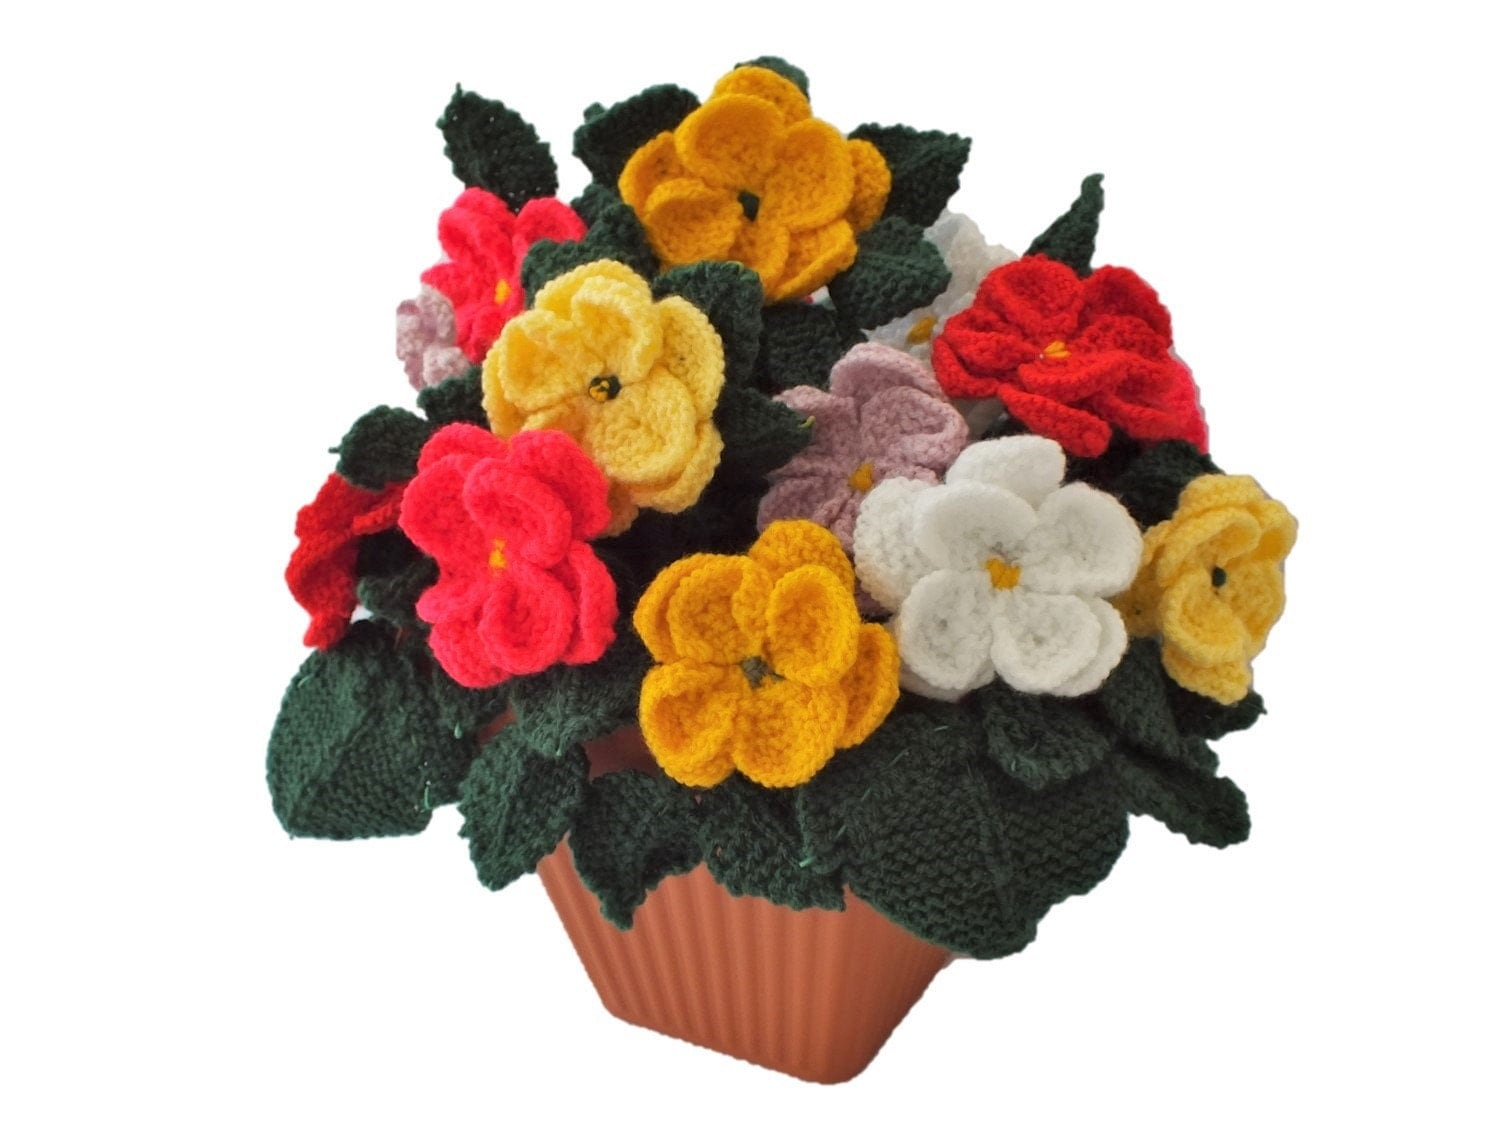 Pot of knitted dahlias knitting pattern for dahlias knitted this is a digital file bankloansurffo Images